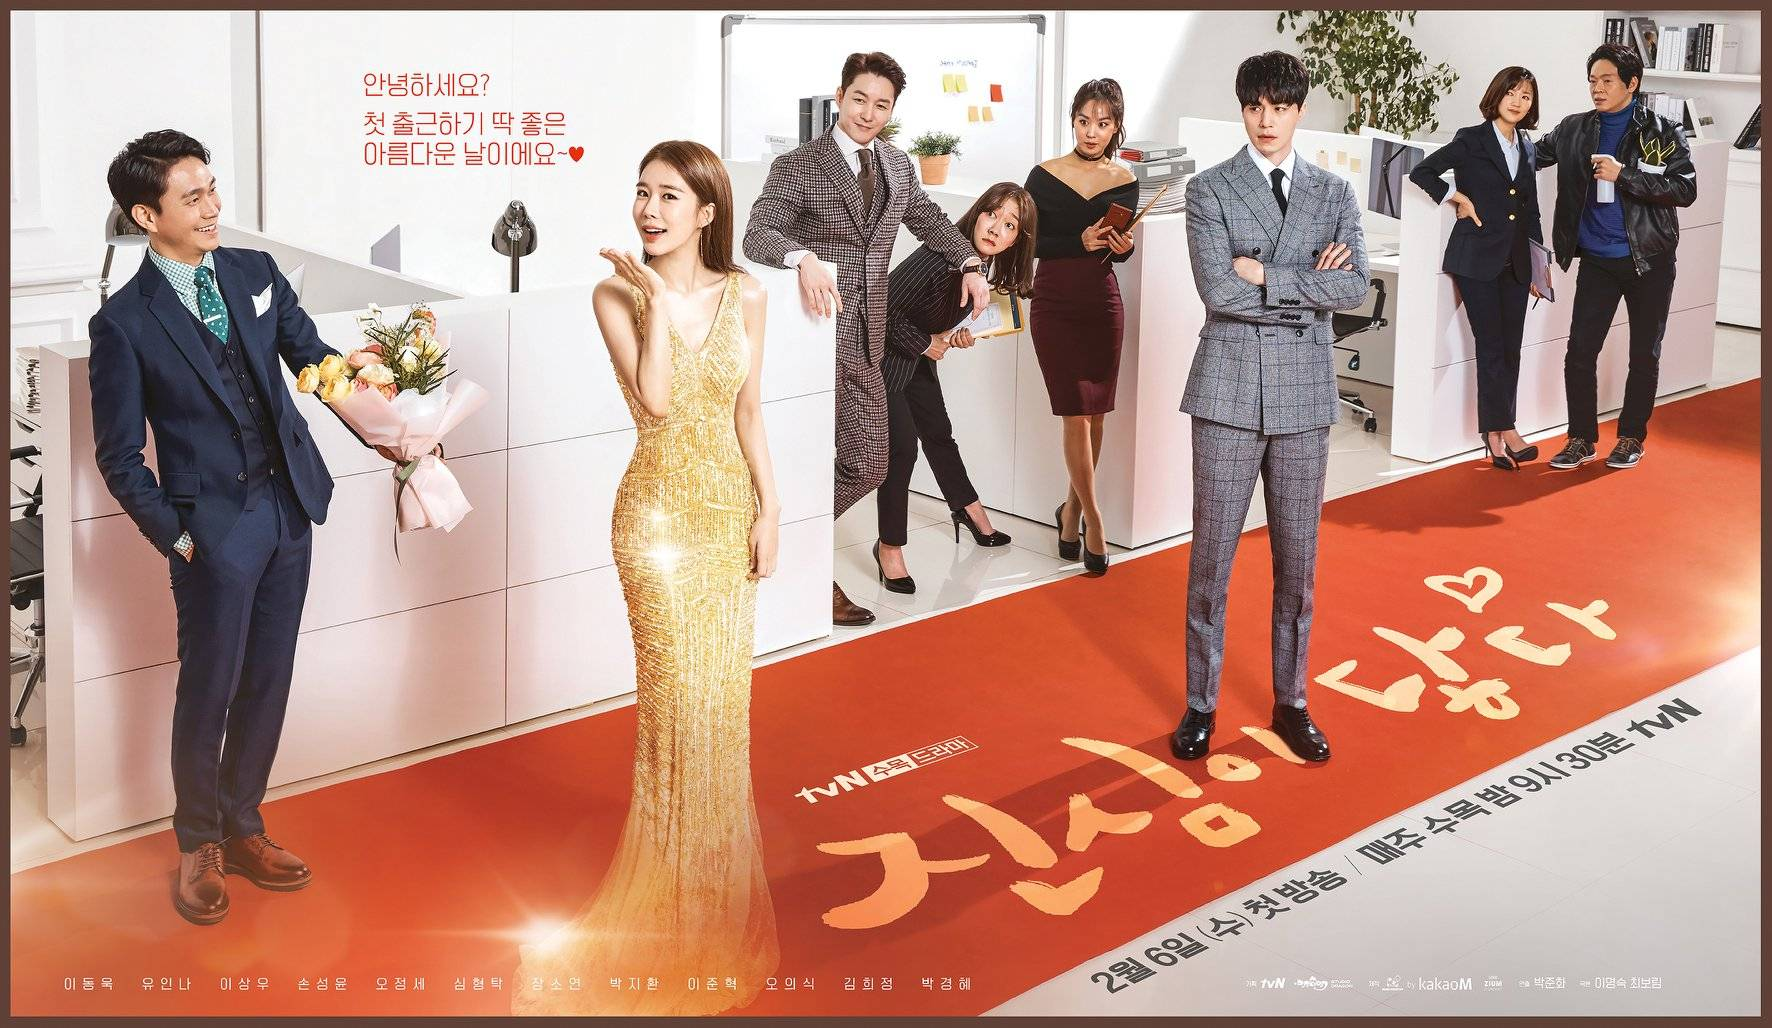 Touch Your Heart (Korean Drama - 2019) - 진심이 닿다 @ HanCinema